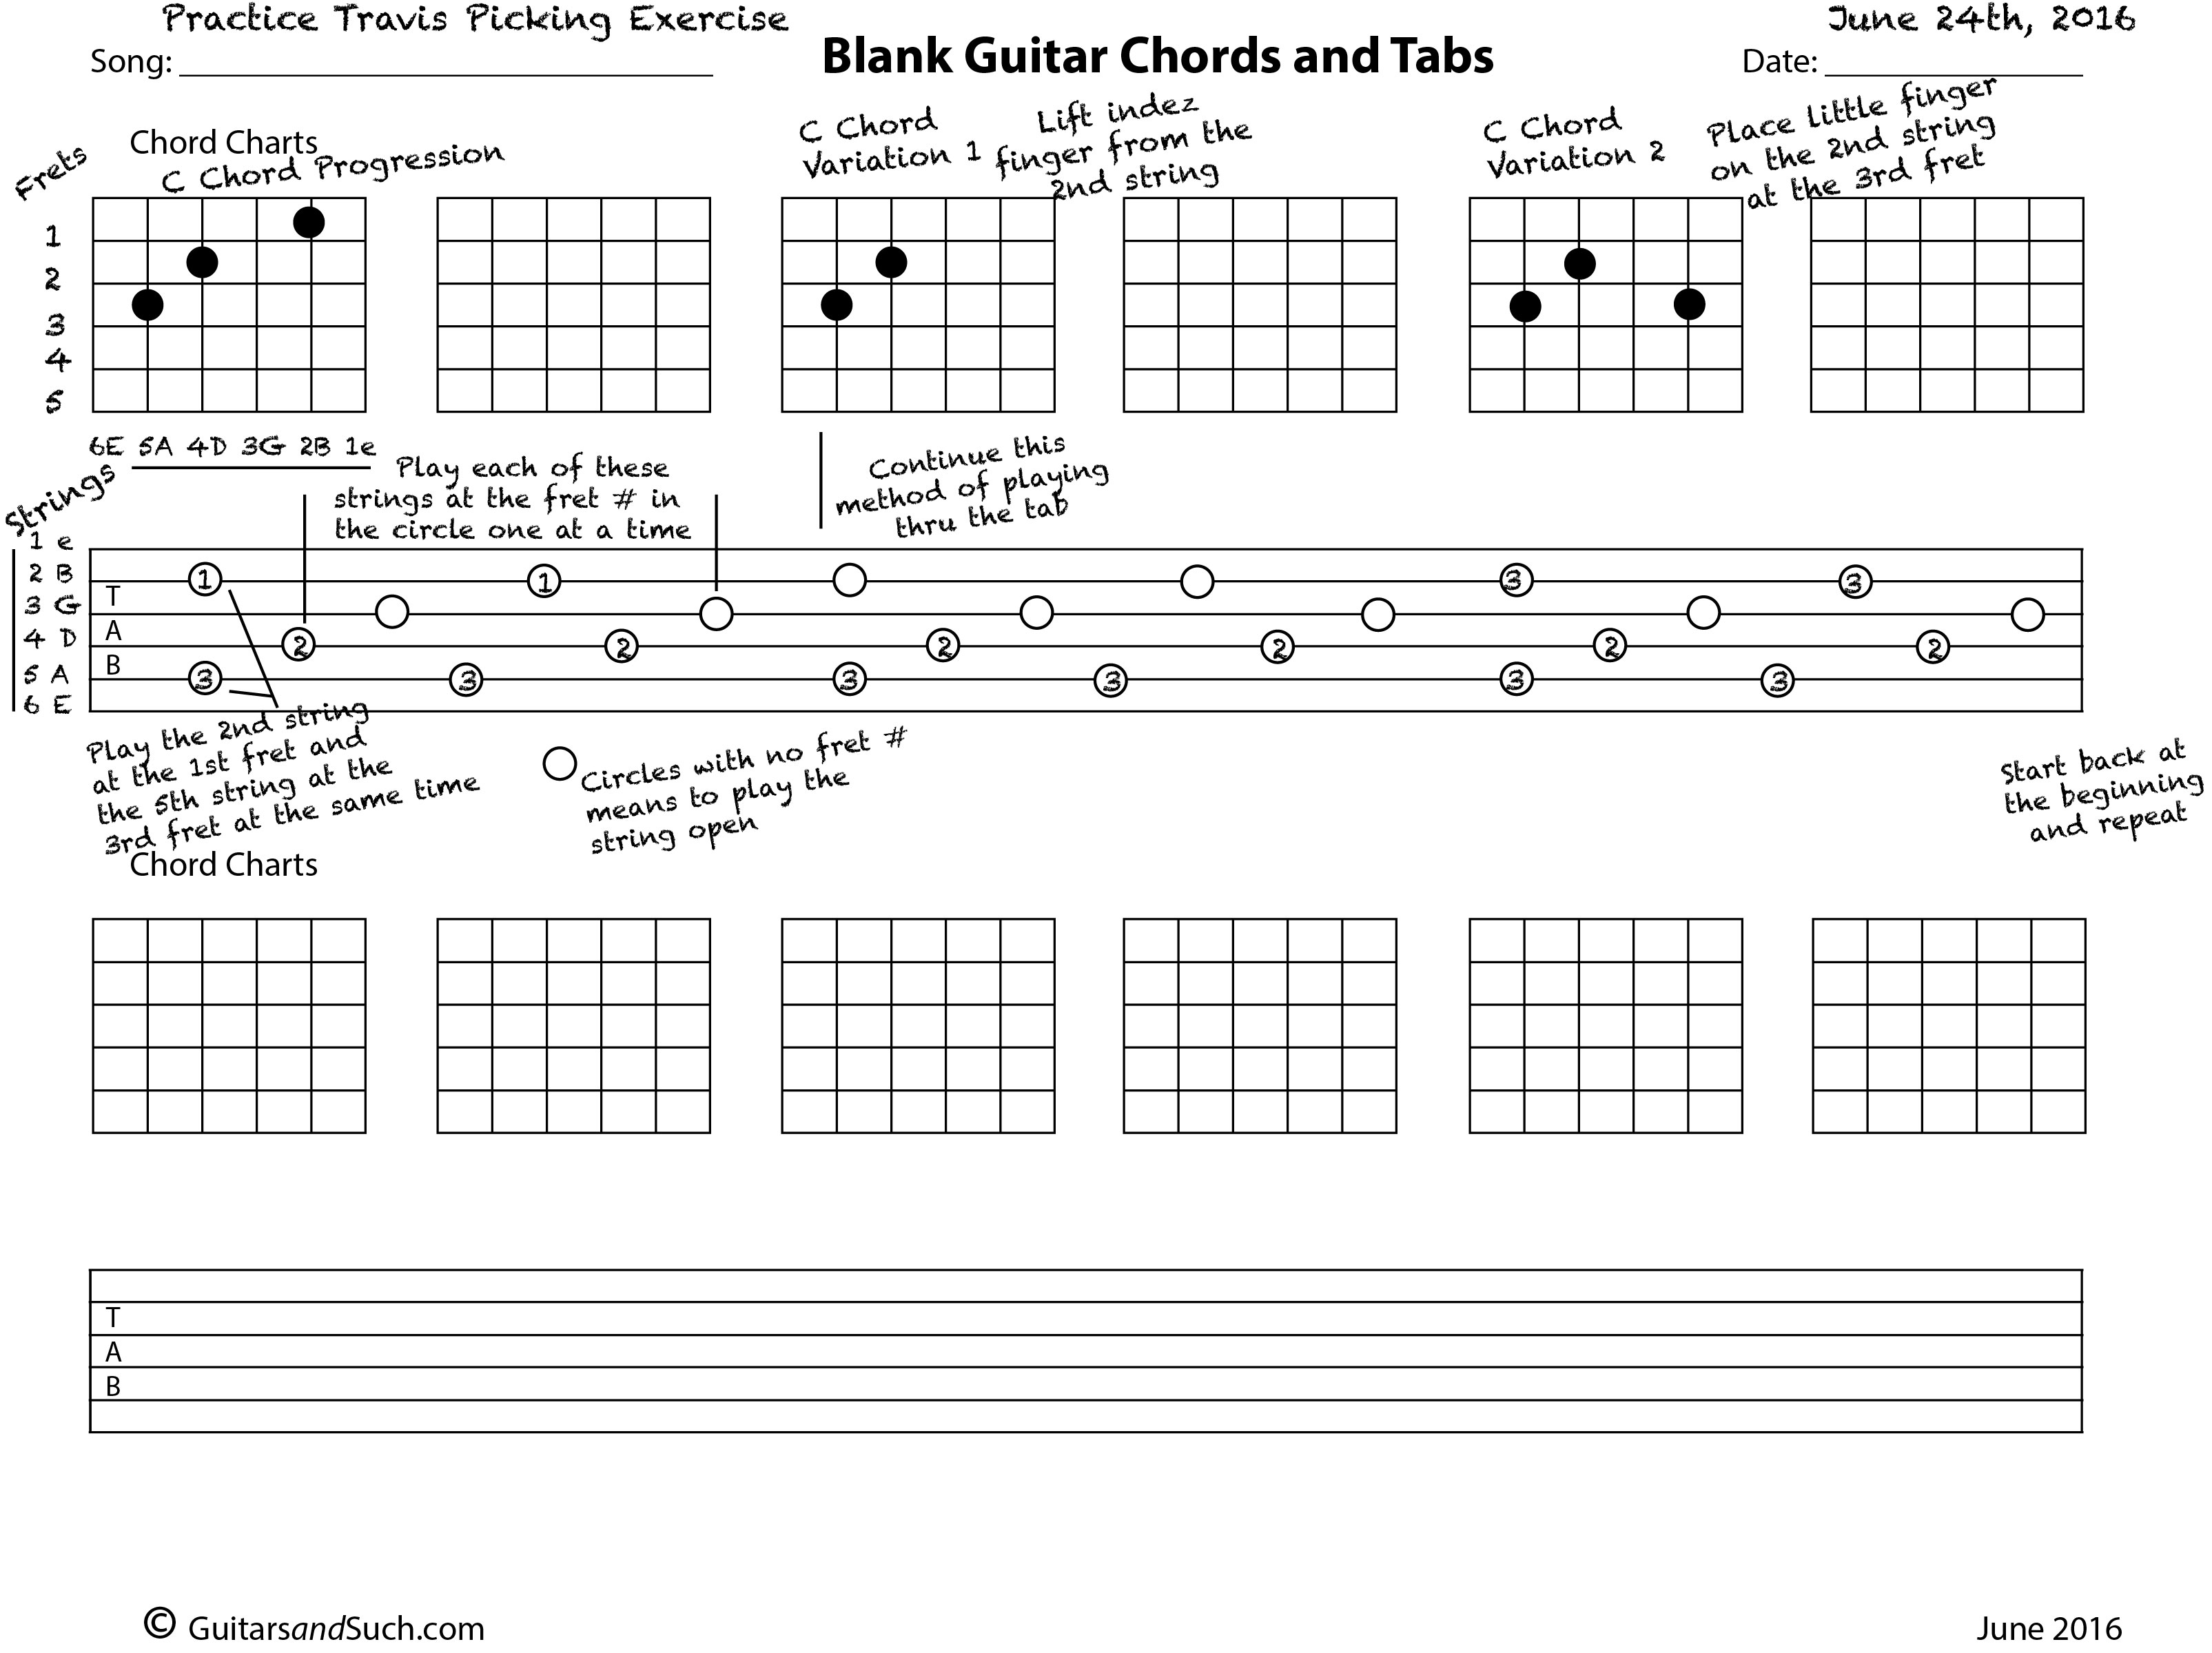 How To Use The Blank Guitar Chord Chart And Tab Template